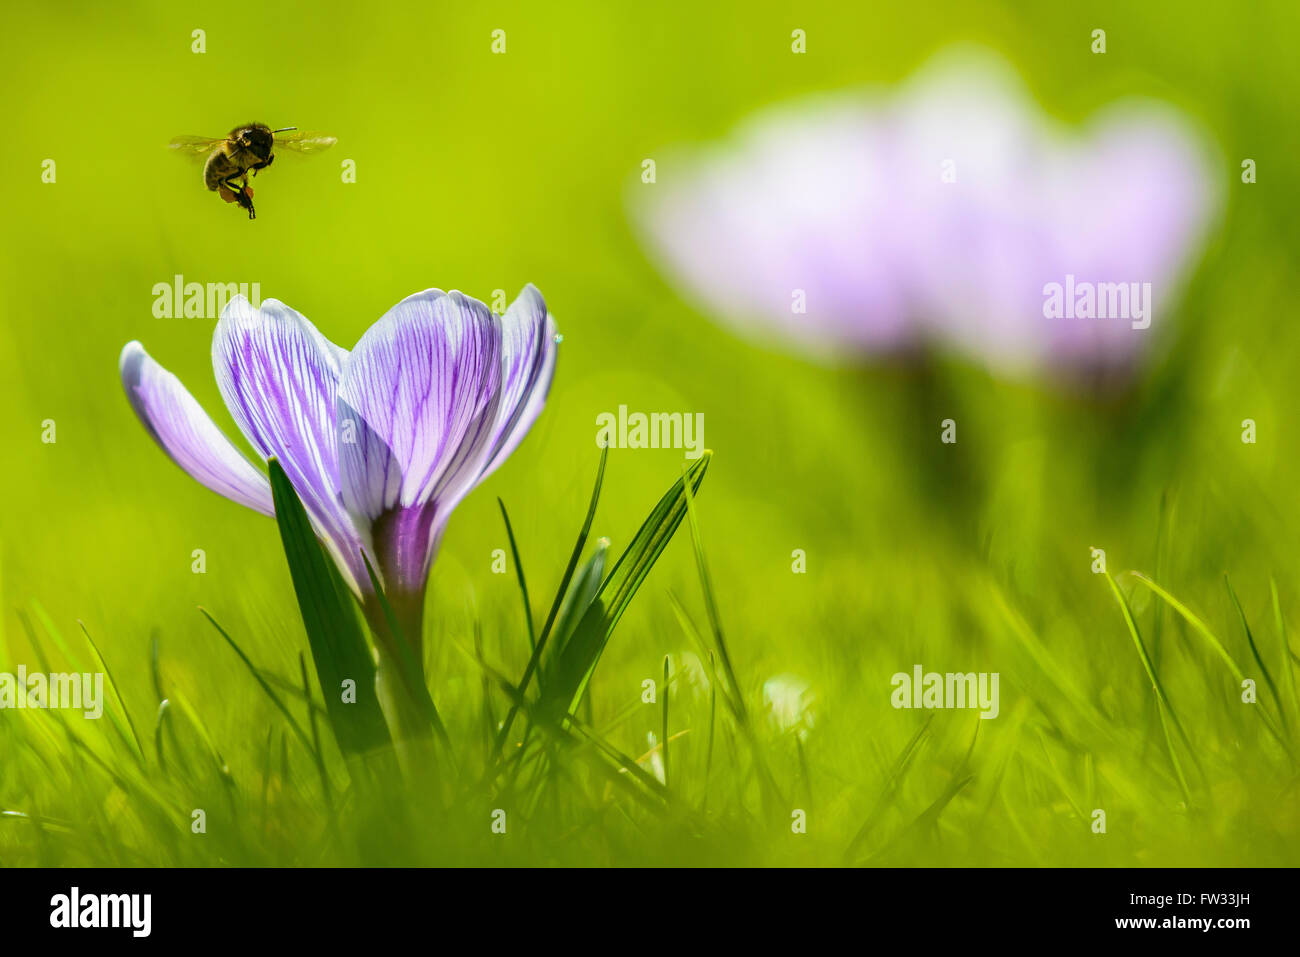 Crocus (Crocus sp.) with an approaching bee (Apis) in flight, Bavaria, Germany - Stock Image